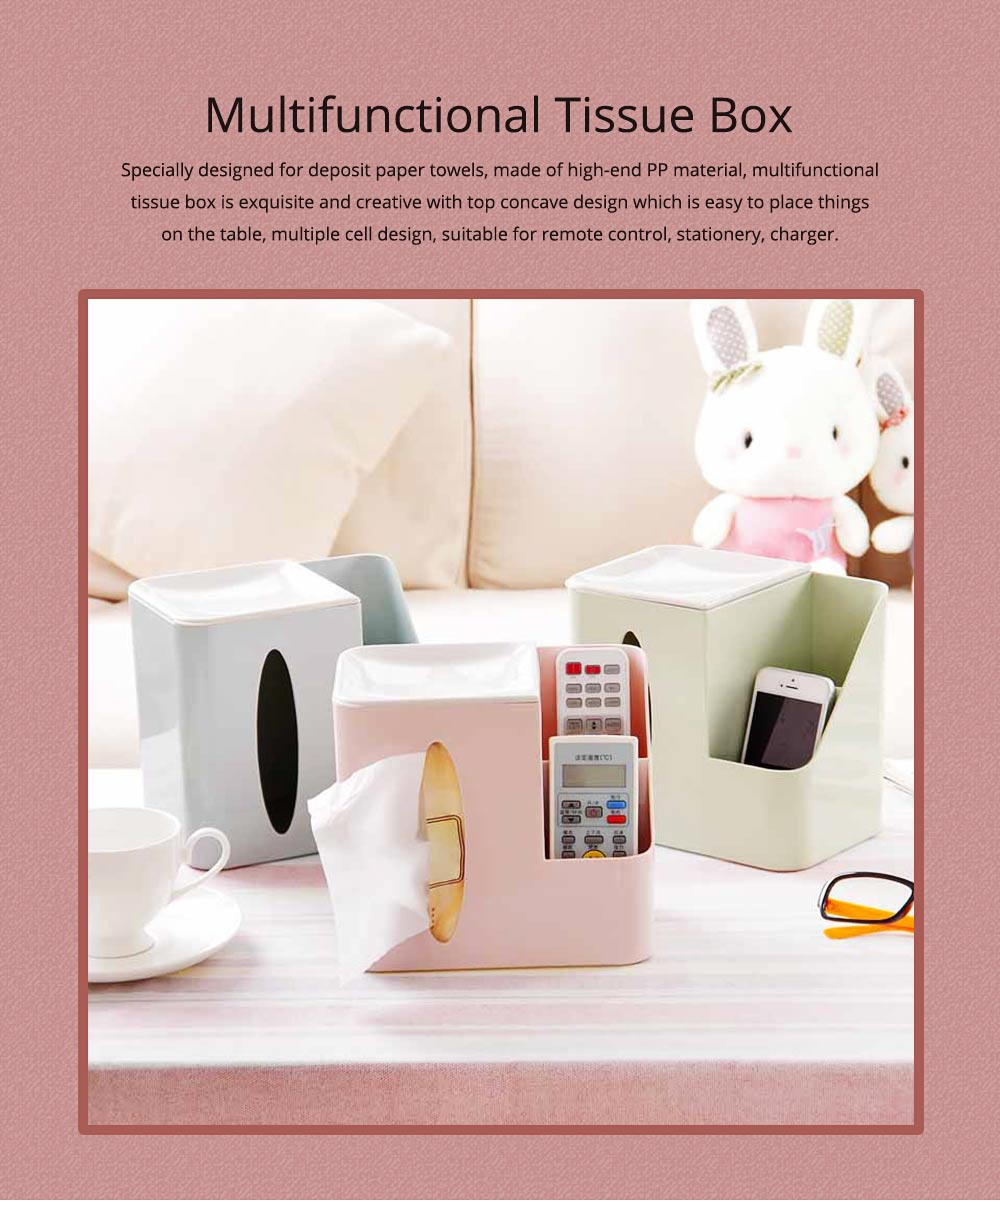 Multifunctional Tissue Box with Multiple Cell & Top Concave Design, Non-skid and Non-abrasive Bottom Pad Tissue Box 0